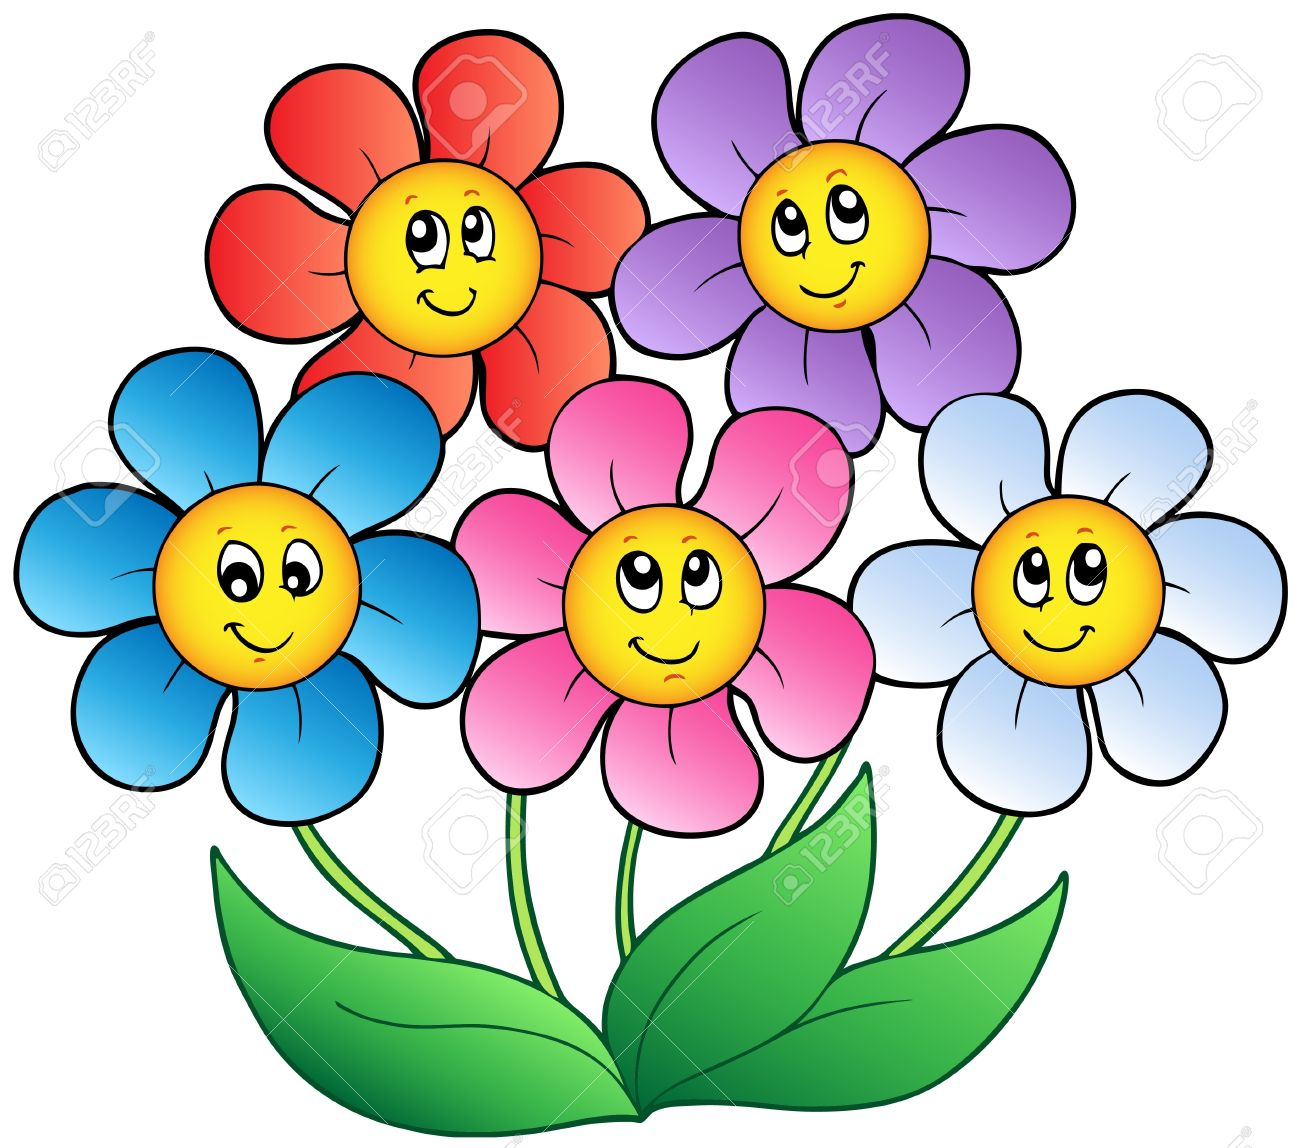 5 clipart flower, 5 flower Transparent FREE for download on.